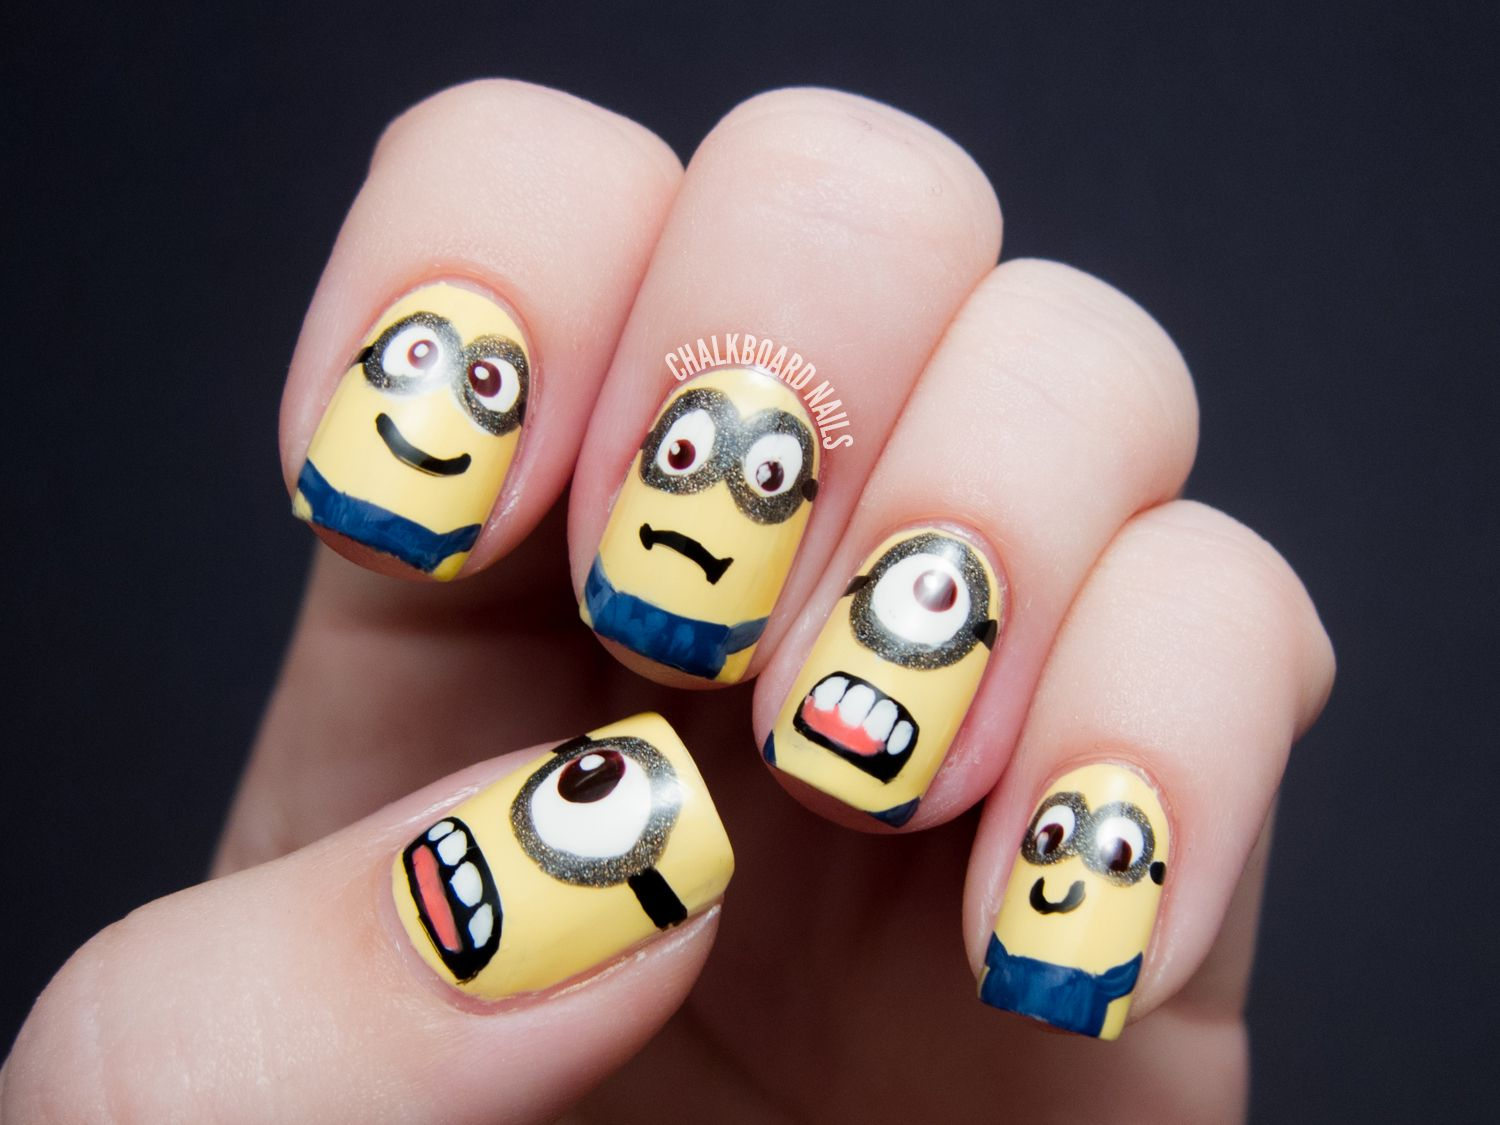 MINIONS!! - Despicable Me Nail Art | Minion nails, Chalkboard nails ...